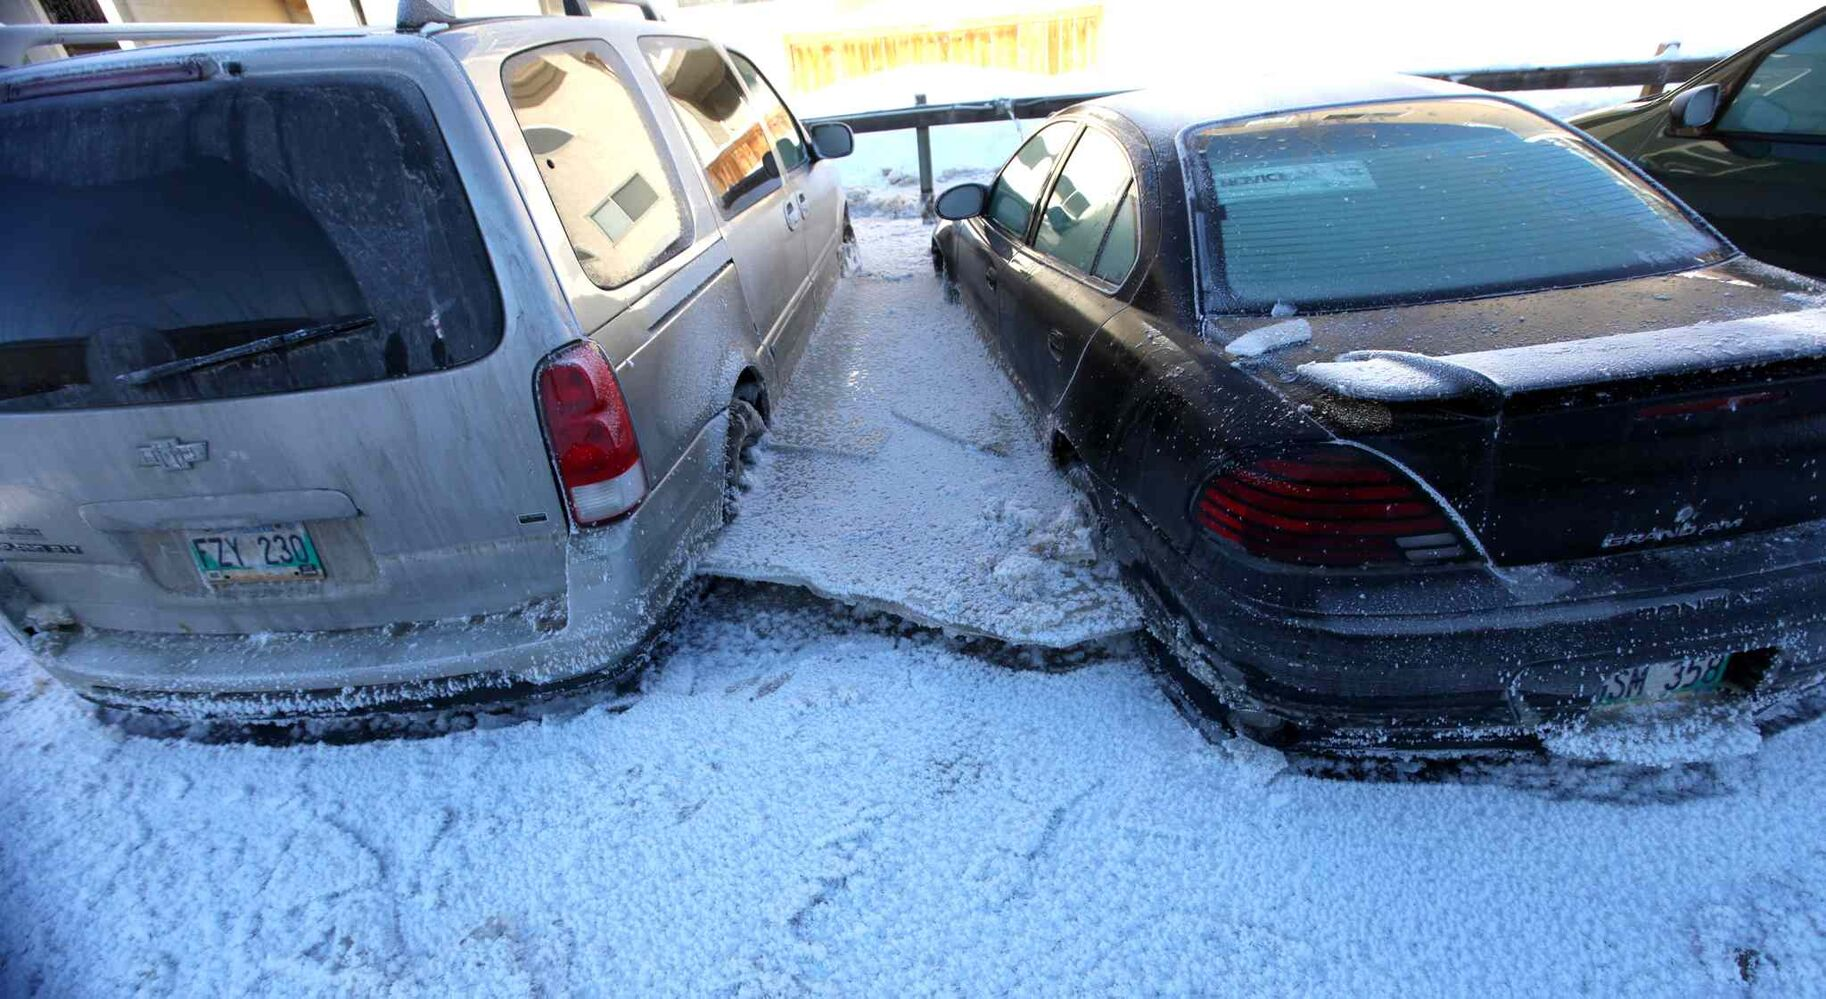 Vehicle stuck in ice after major water main break on New Year's Eve day on Jefferson.